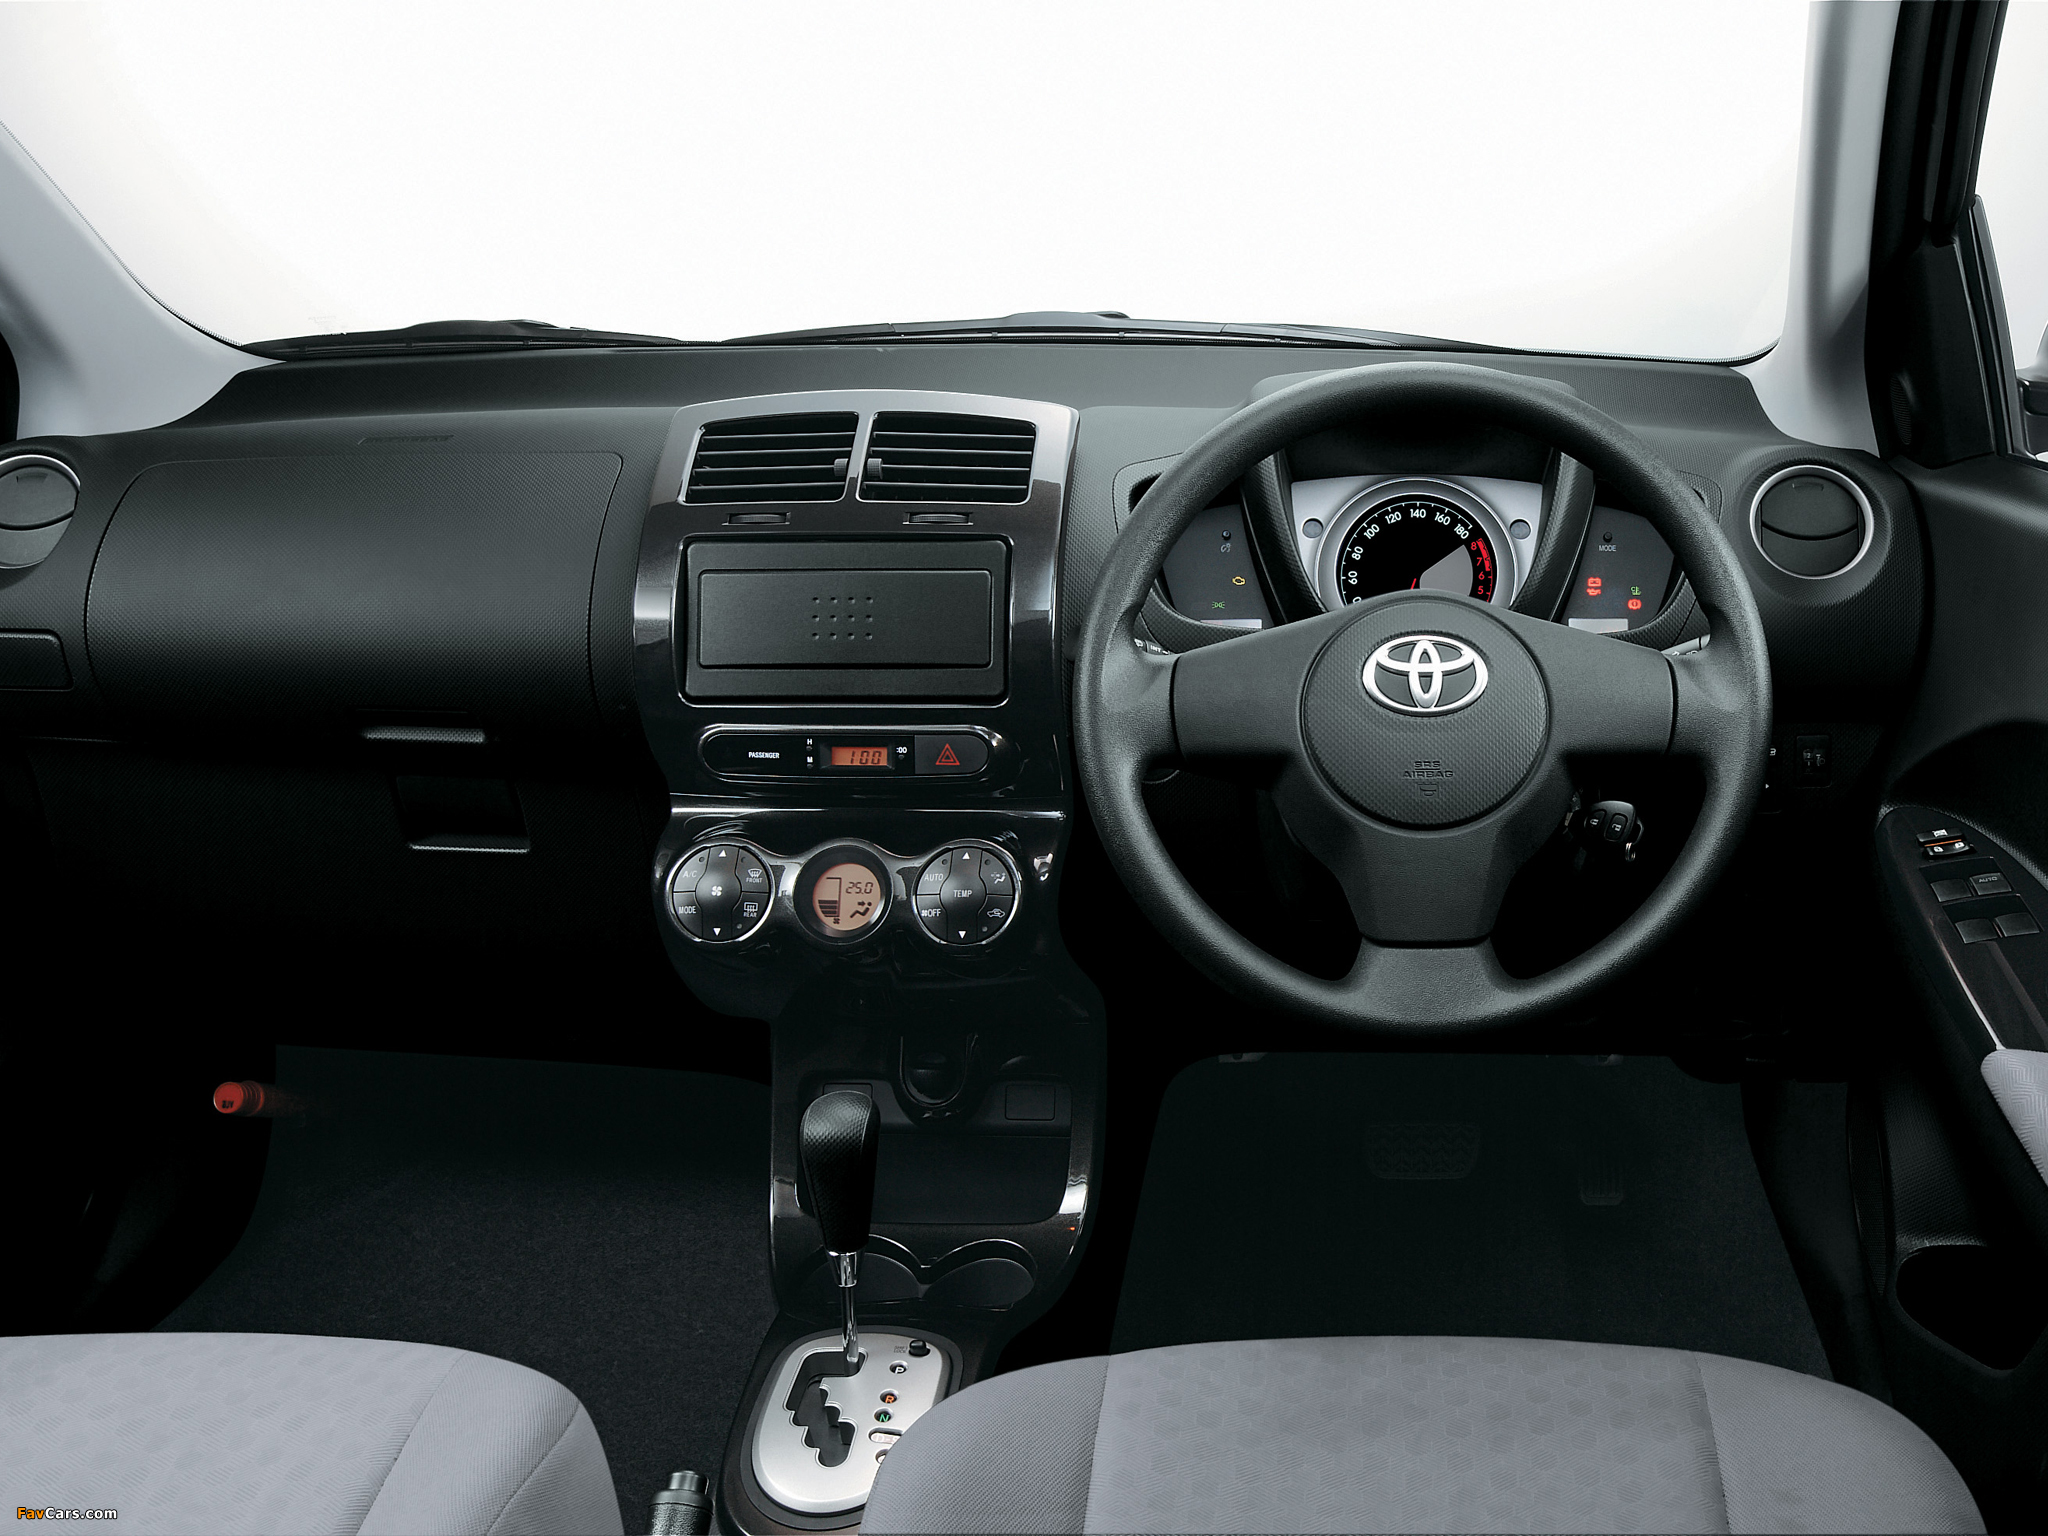 cost of toyota ist nice cars in your city